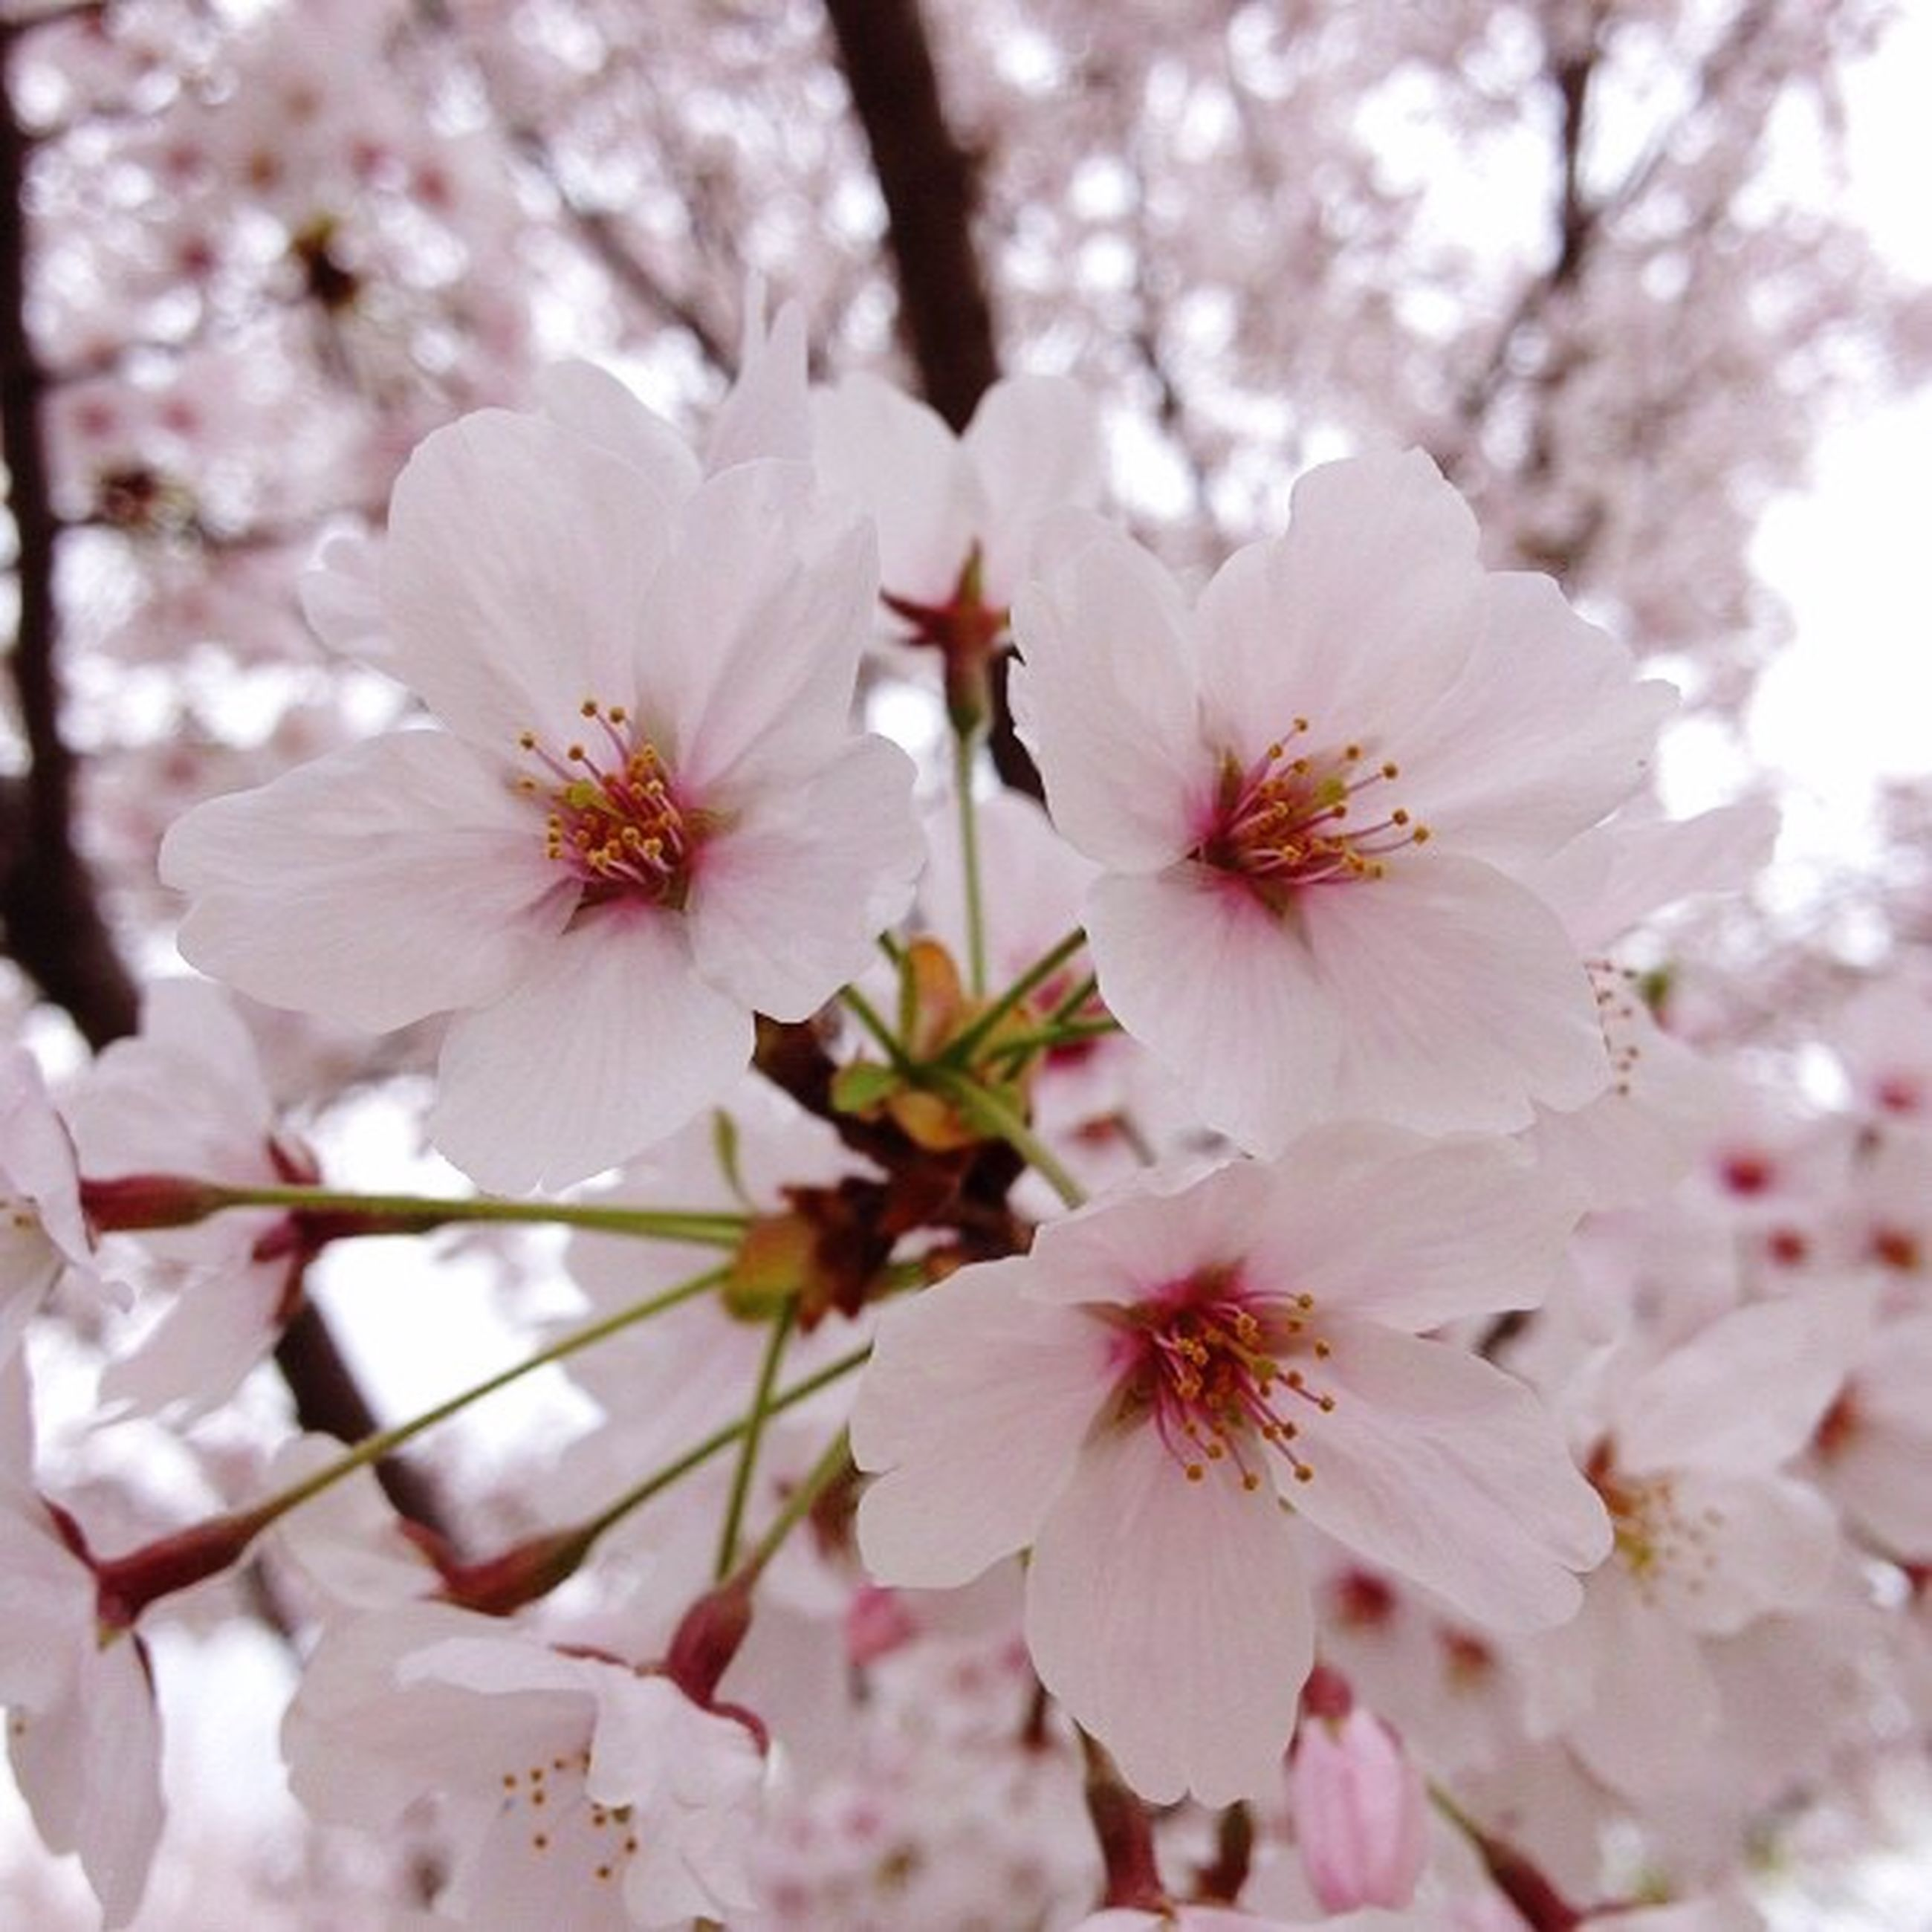 nature, flower, beauty in nature, growth, fragility, tree, springtime, freshness, petal, blossom, close-up, outdoors, day, flower head, no people, branch, plum blossom